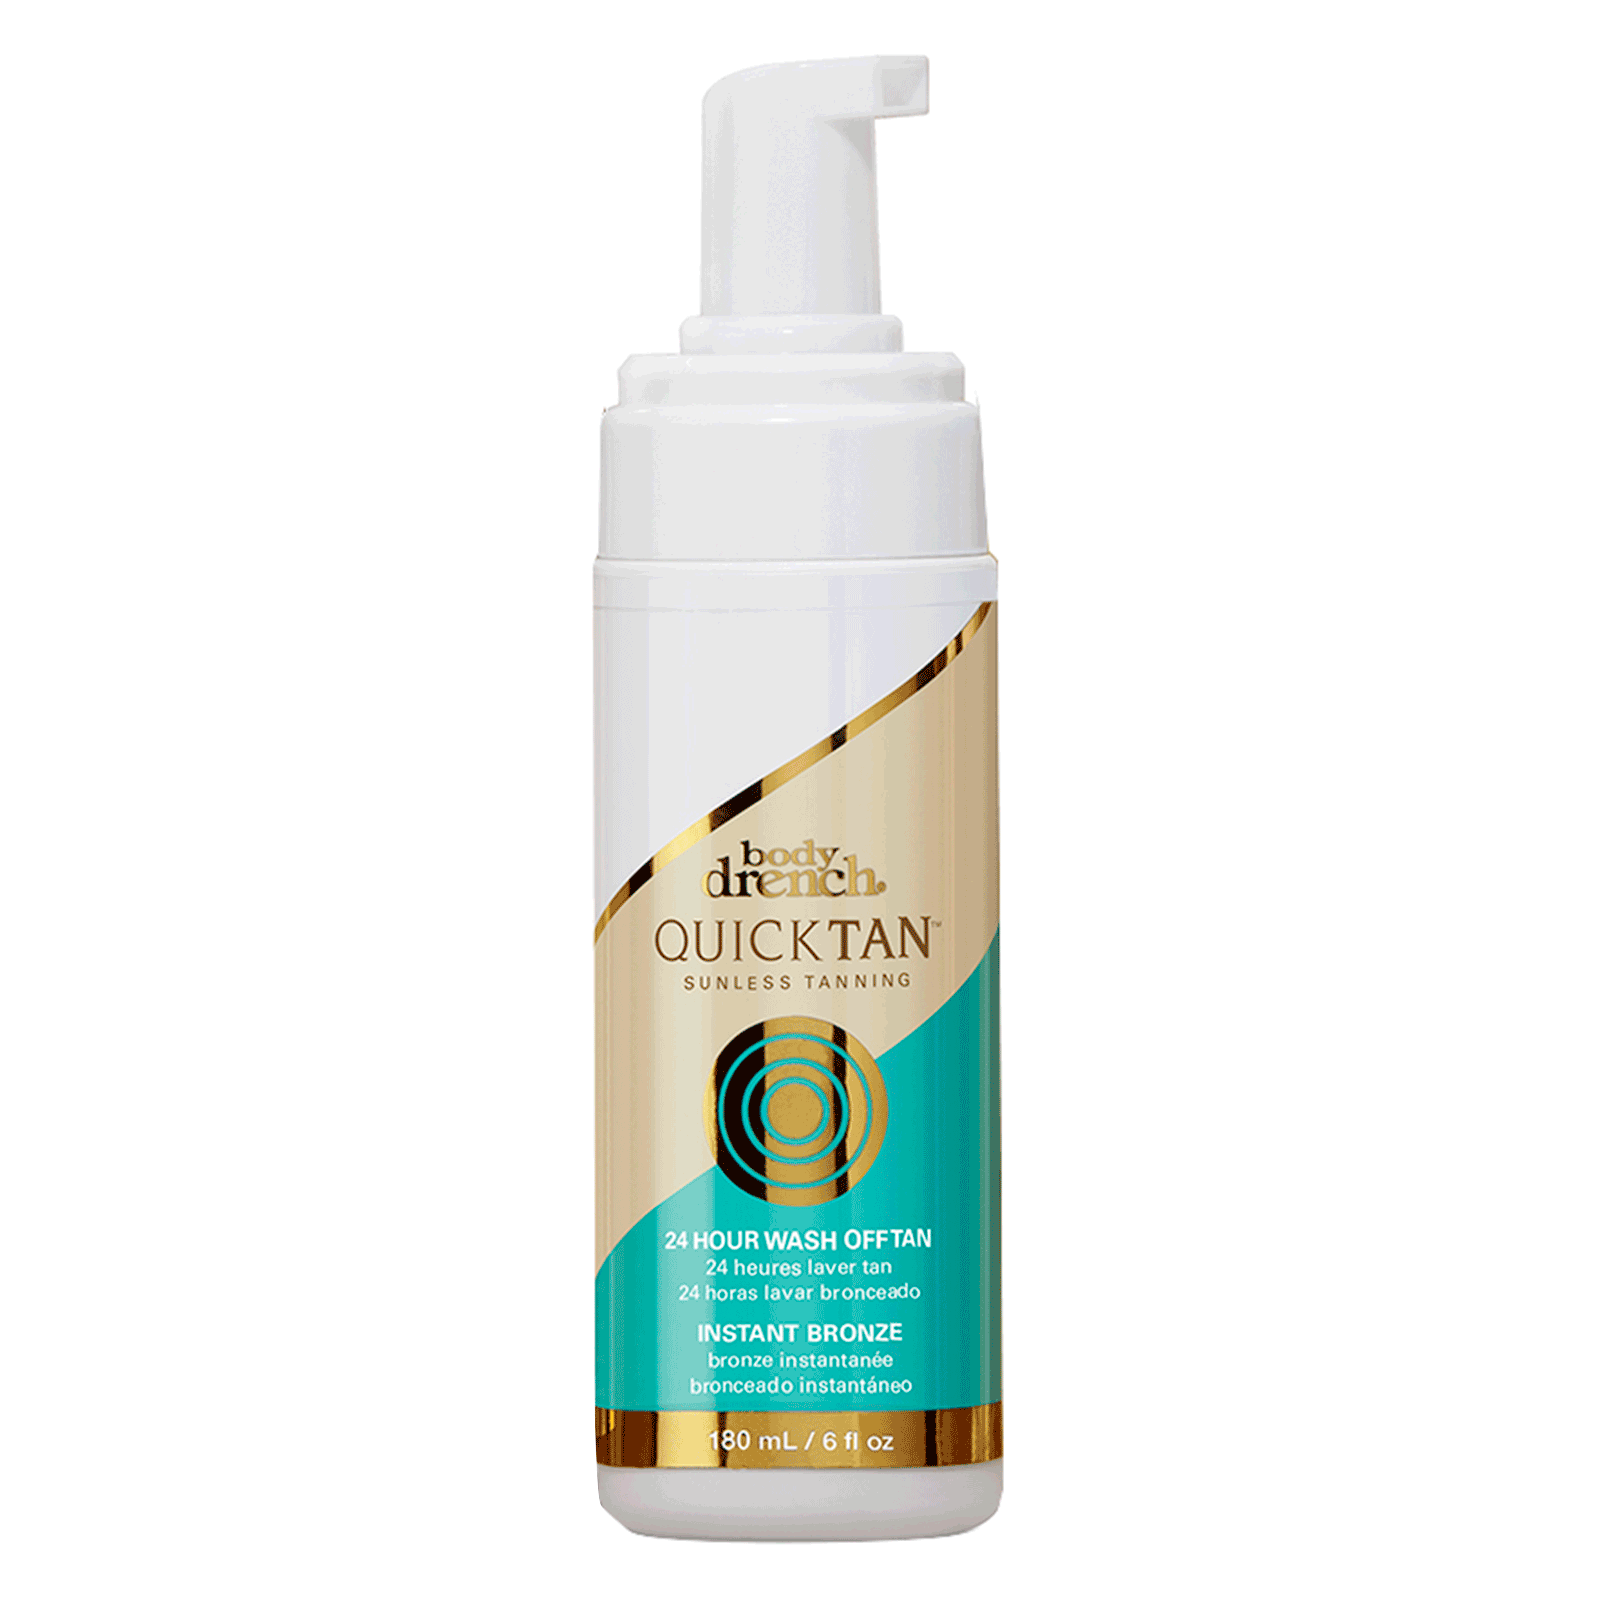 Tan Gorgeous Instant Bronze - 24 hour wash off tan